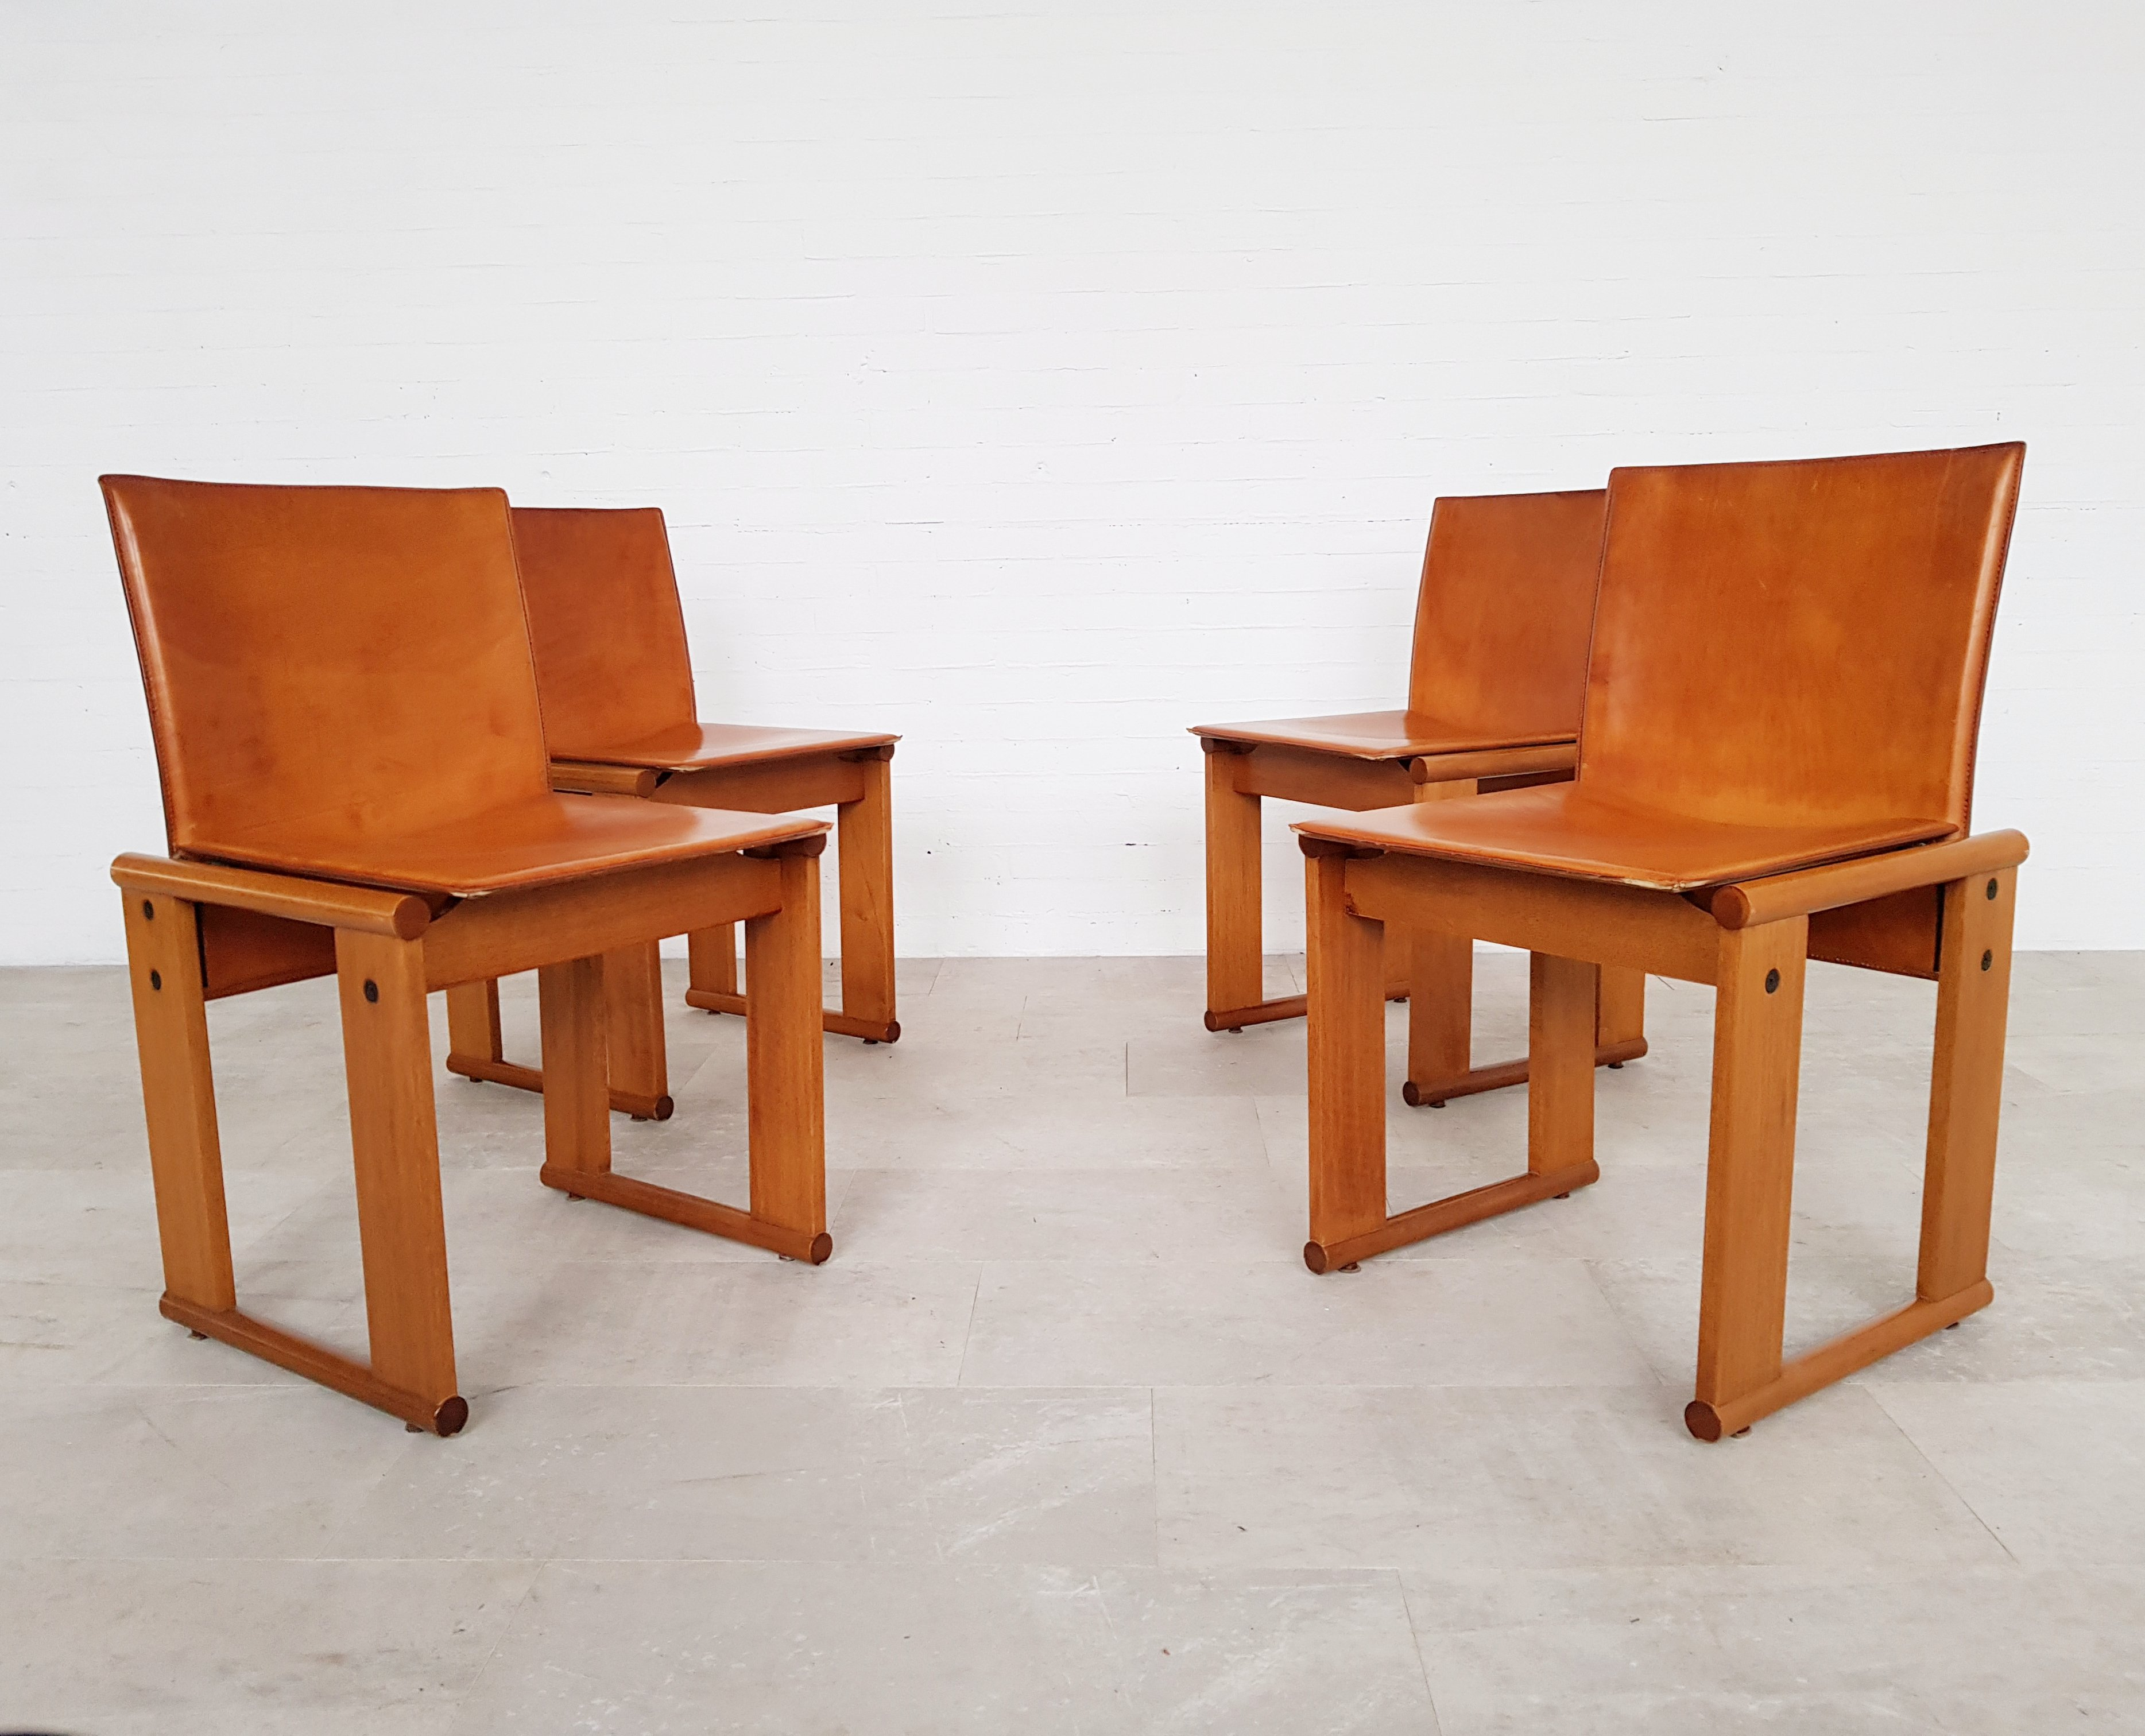 Set Of 4 Cognac Leather Dining Chairs By Afra Tobia Scarpa For Molteni 1970s 98459